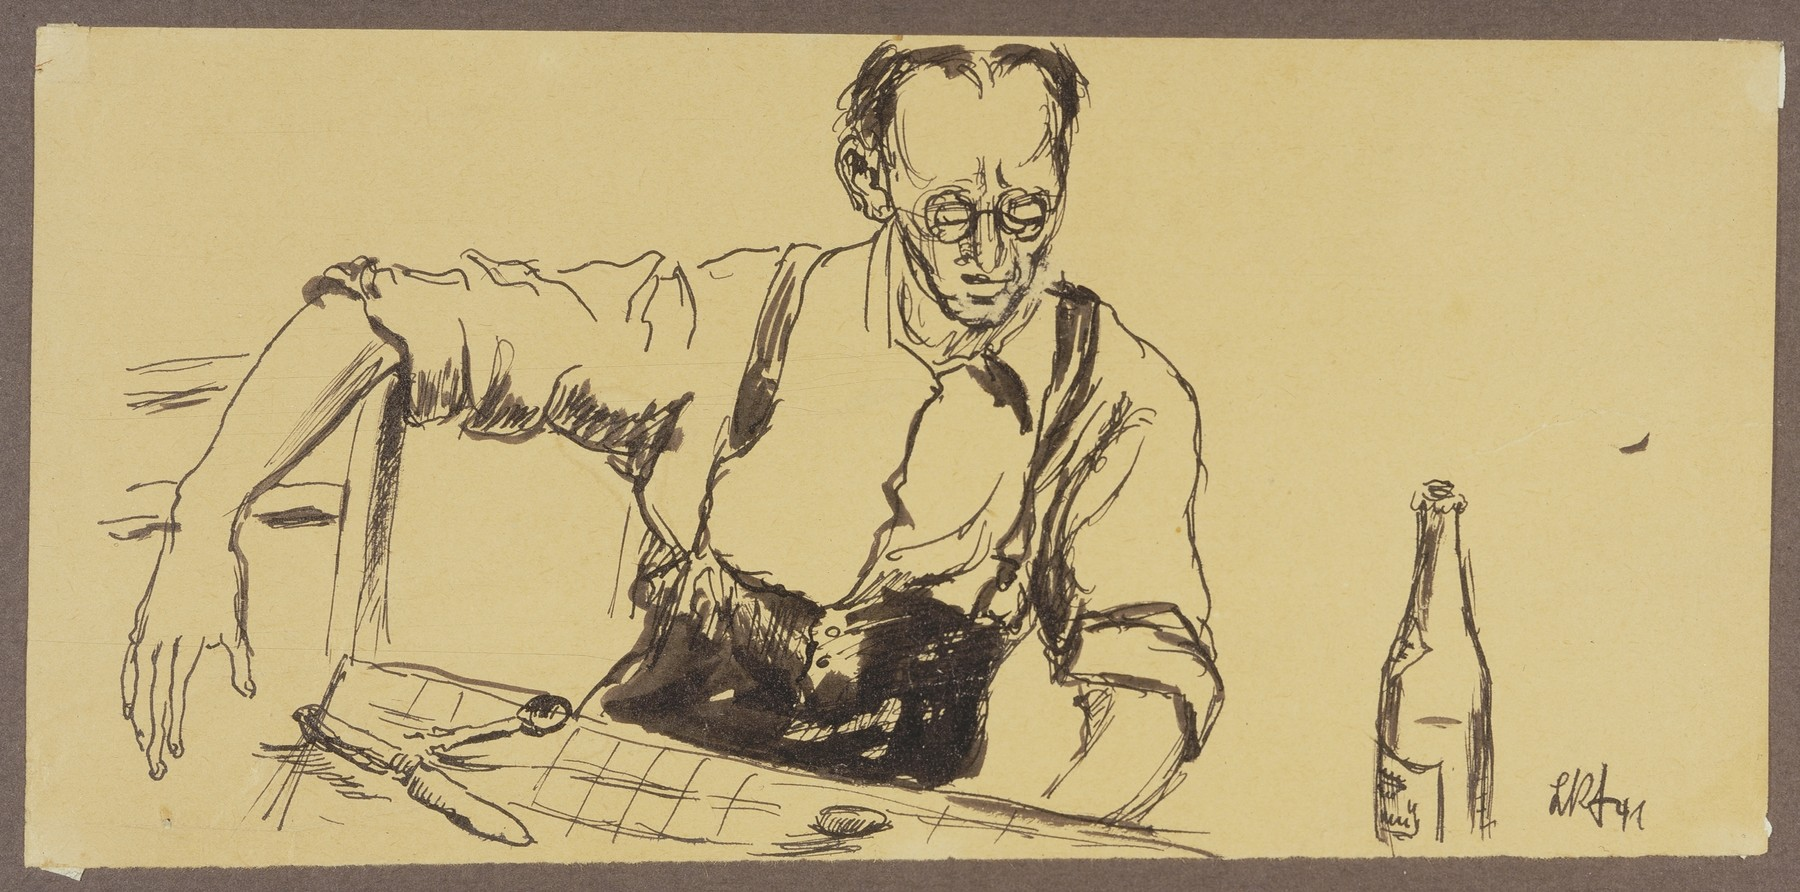 """Male Internee Seated at Table with Silverware and Bottle, Camp de Gurs""  by Lili Andrieux."